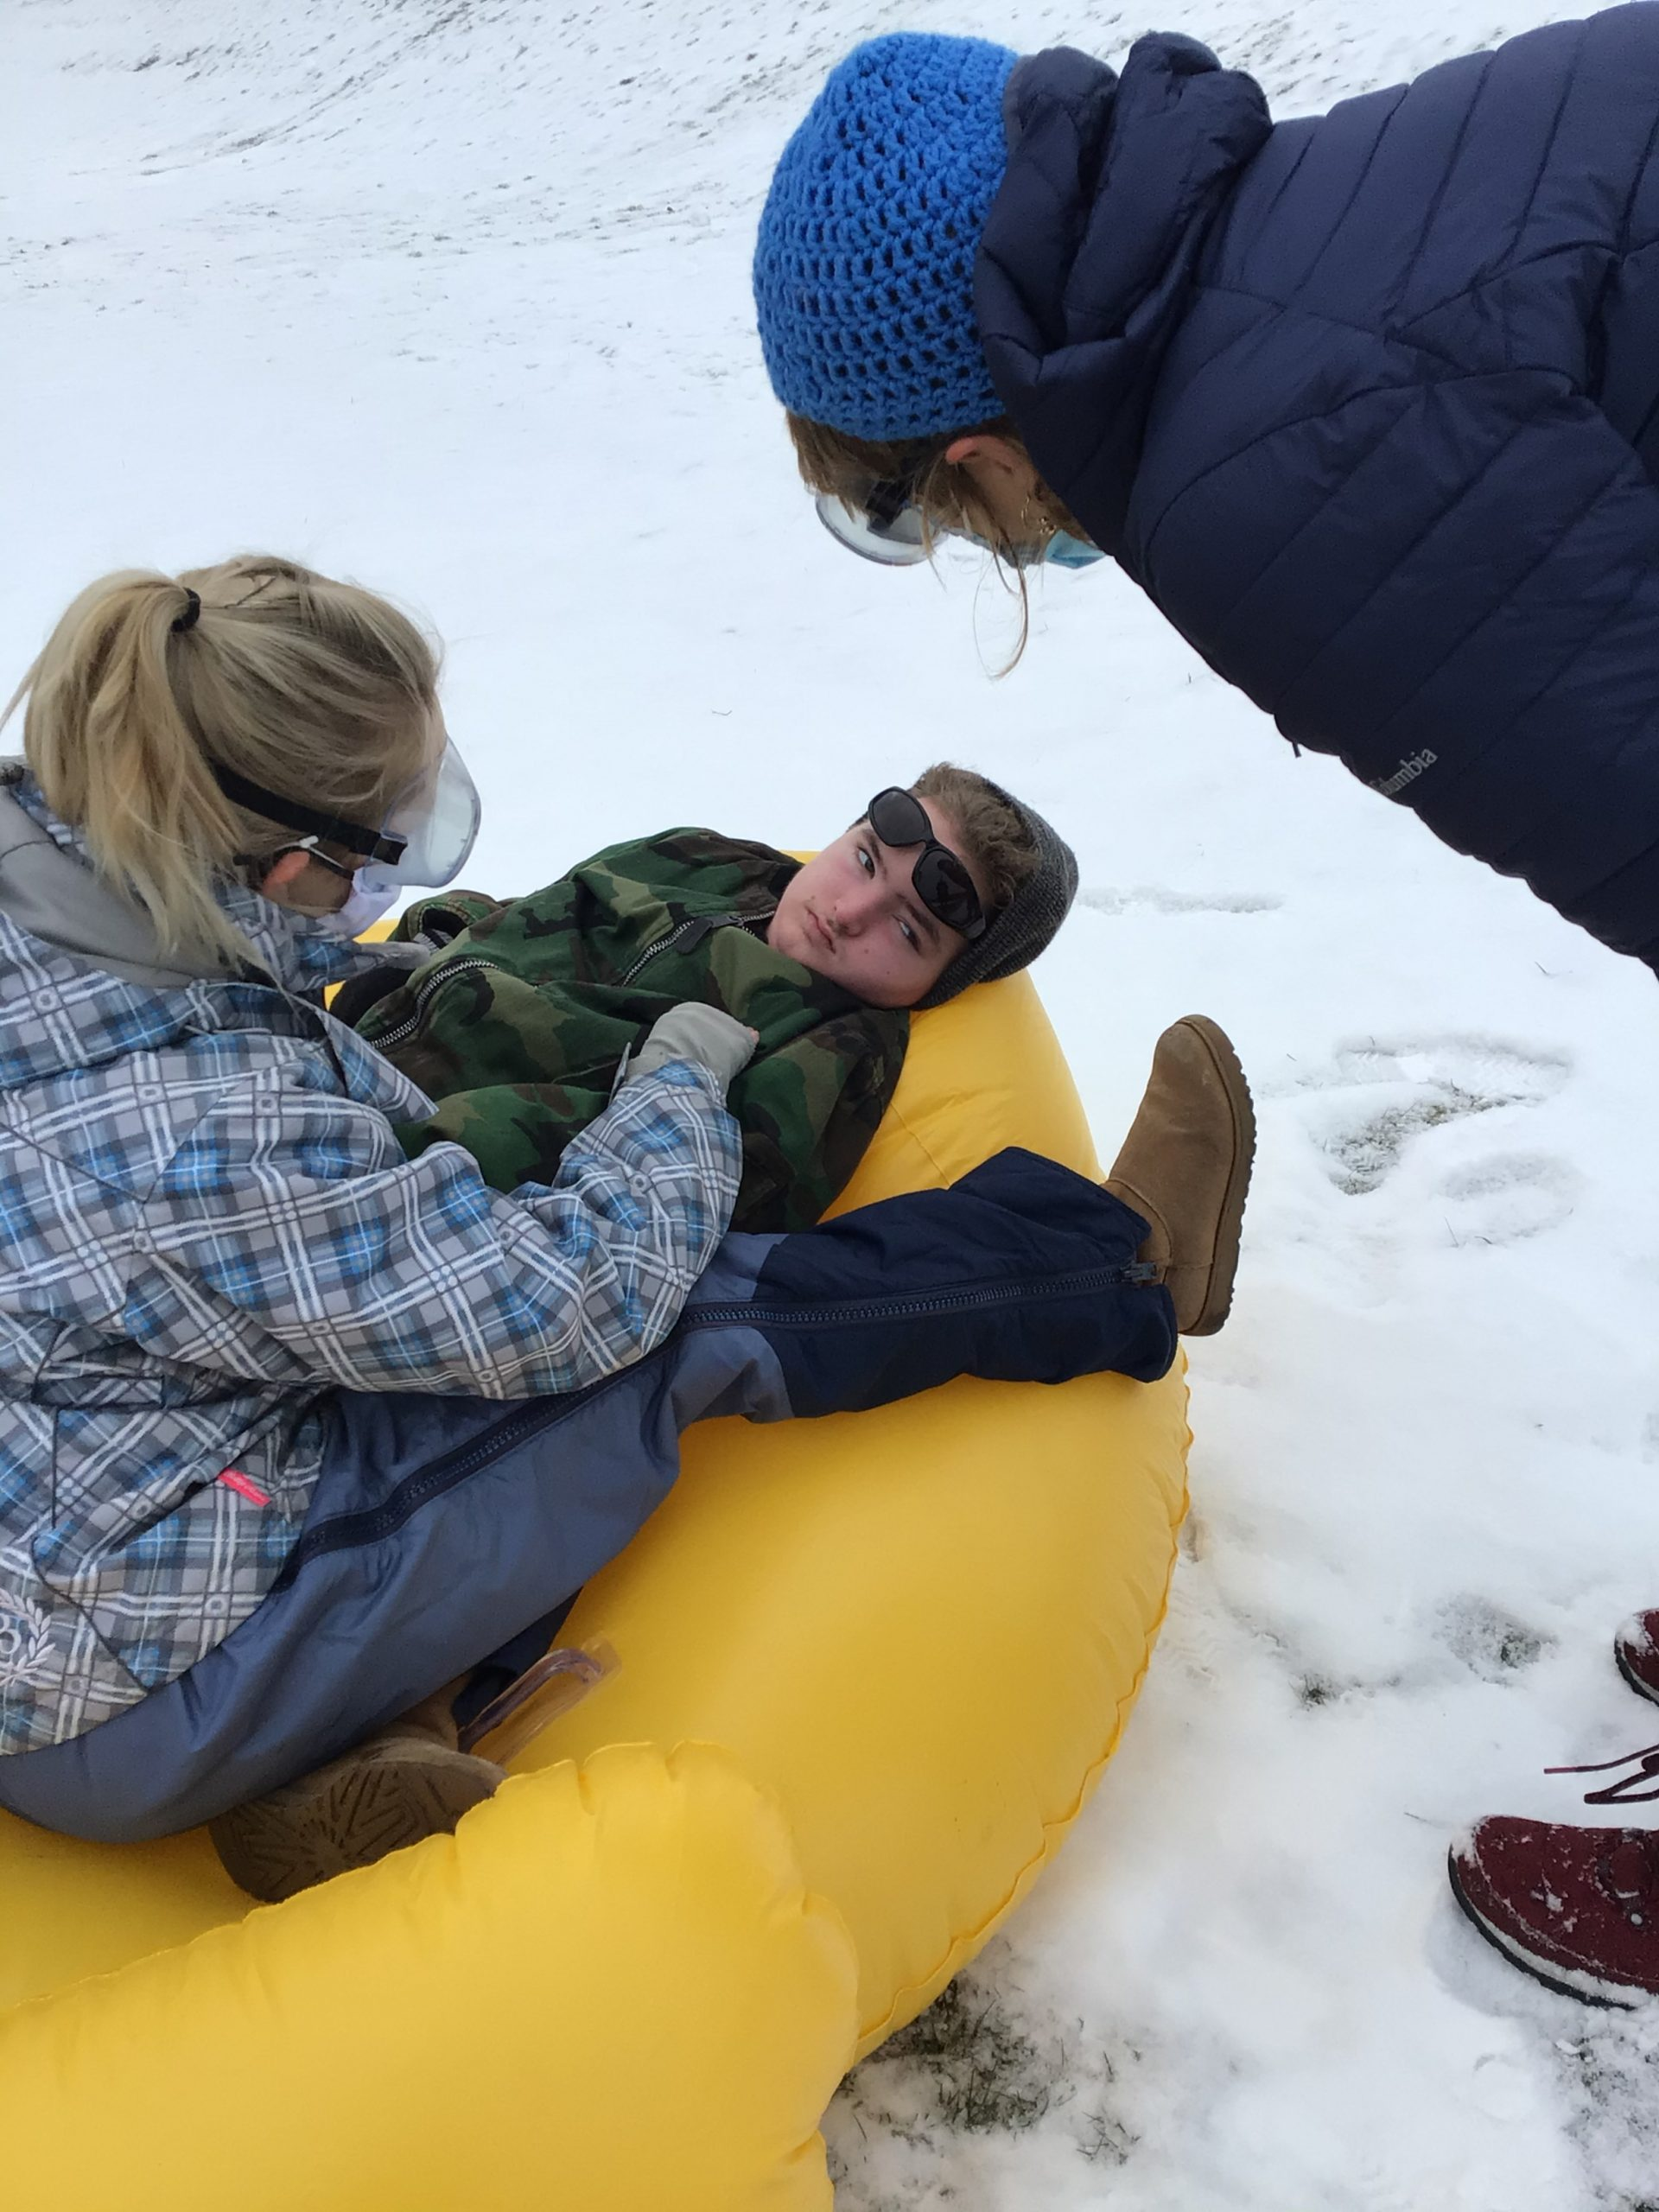 2021 DayStudentSledding School  4  jpeg OxEhjEwJ scaled - Braving The Cold In Style - Take a Look Tuesday